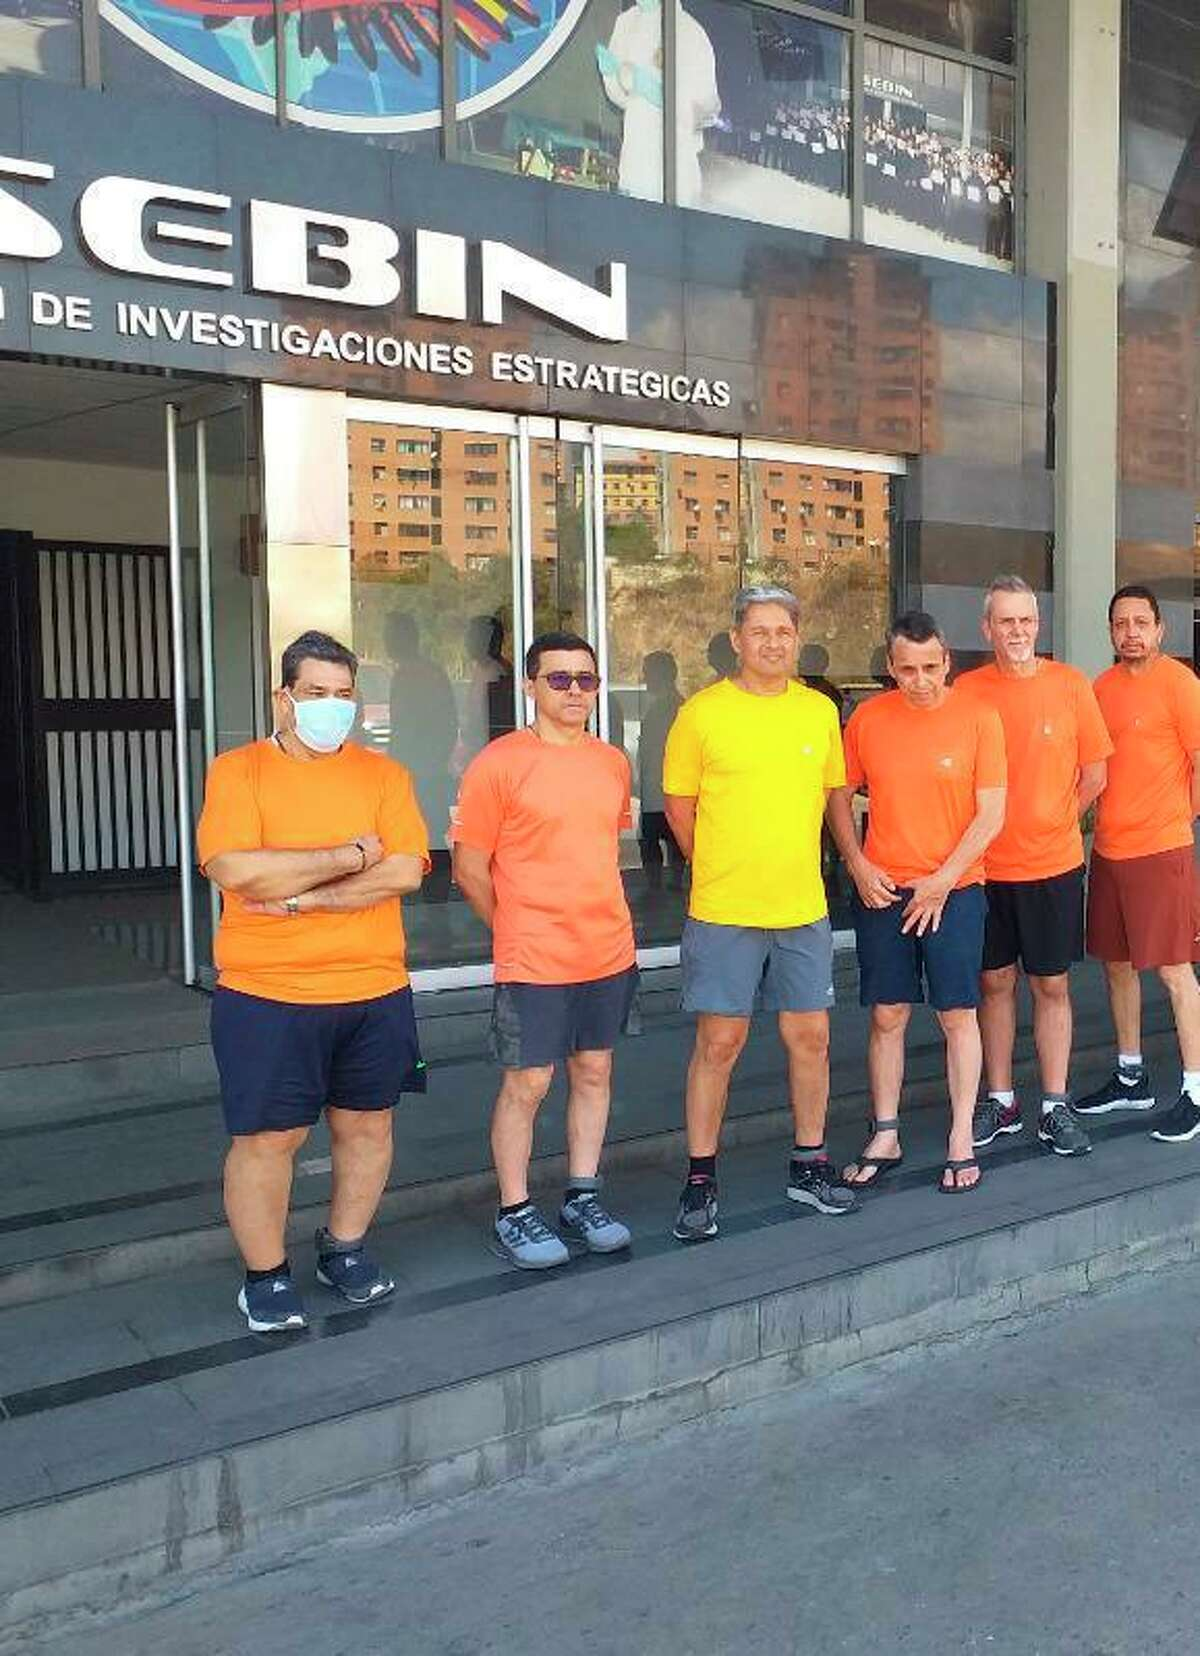 This undated file photo posted on Twitter on June 18, 2020 by Venezuela's Foreign Minister Jorge Arreaza, shows Citgo executives Jose Angel Pereira, from left to right, Gustavo Cardenas, Jorge Toledo, Jose Luis Zambrano, Tomeu Vadell and Alirio Jose Zambrano, standing outside the Bolivarian National Intelligence Service, in Caracas, Venezuela. The six executives held for three years in Venezuela were found guilty of corruption charges by a judge Thursday and immediately sentenced to prison, according to defense lawyers.